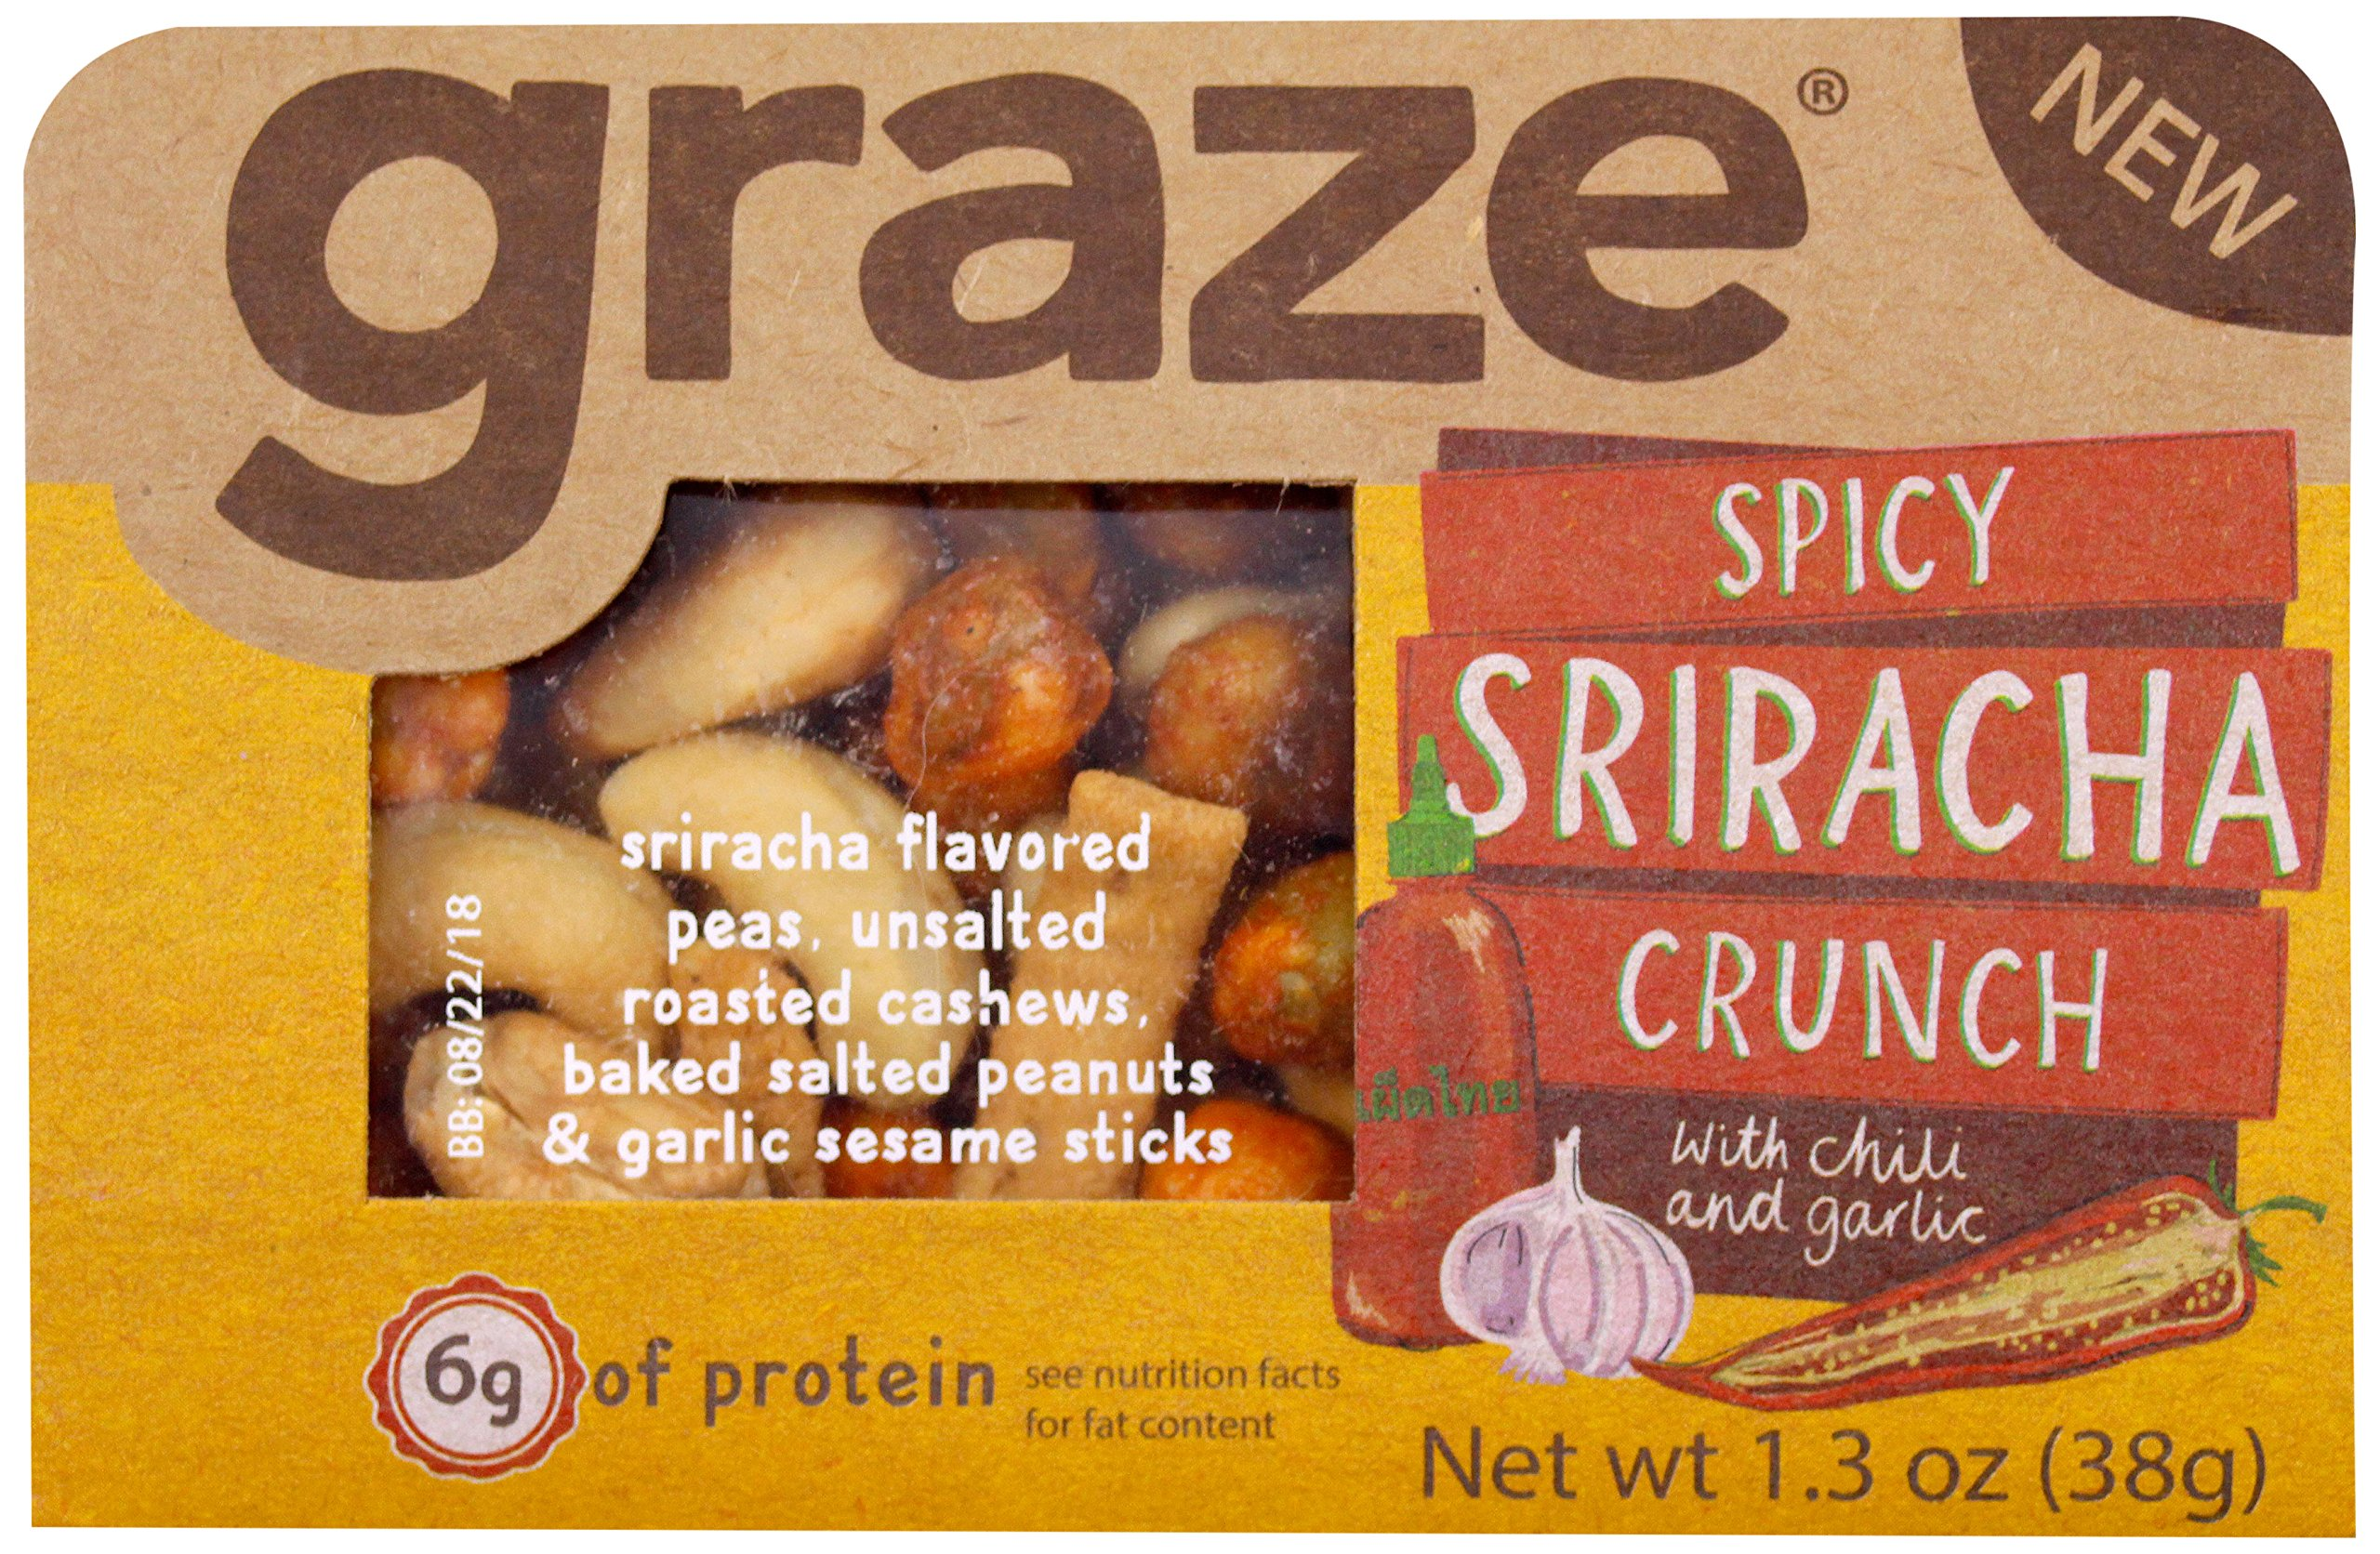 Graze Natural Spicy Sriracha Crunch Snack with Sriracha Peas, Roasted Cashews, Baked Salted Peanuts and Garlic Sesame Sticks, Healthy, Tasty, Natural Nut Trail Mix, 1.3 Ounce Box, 9 Pack by Graze